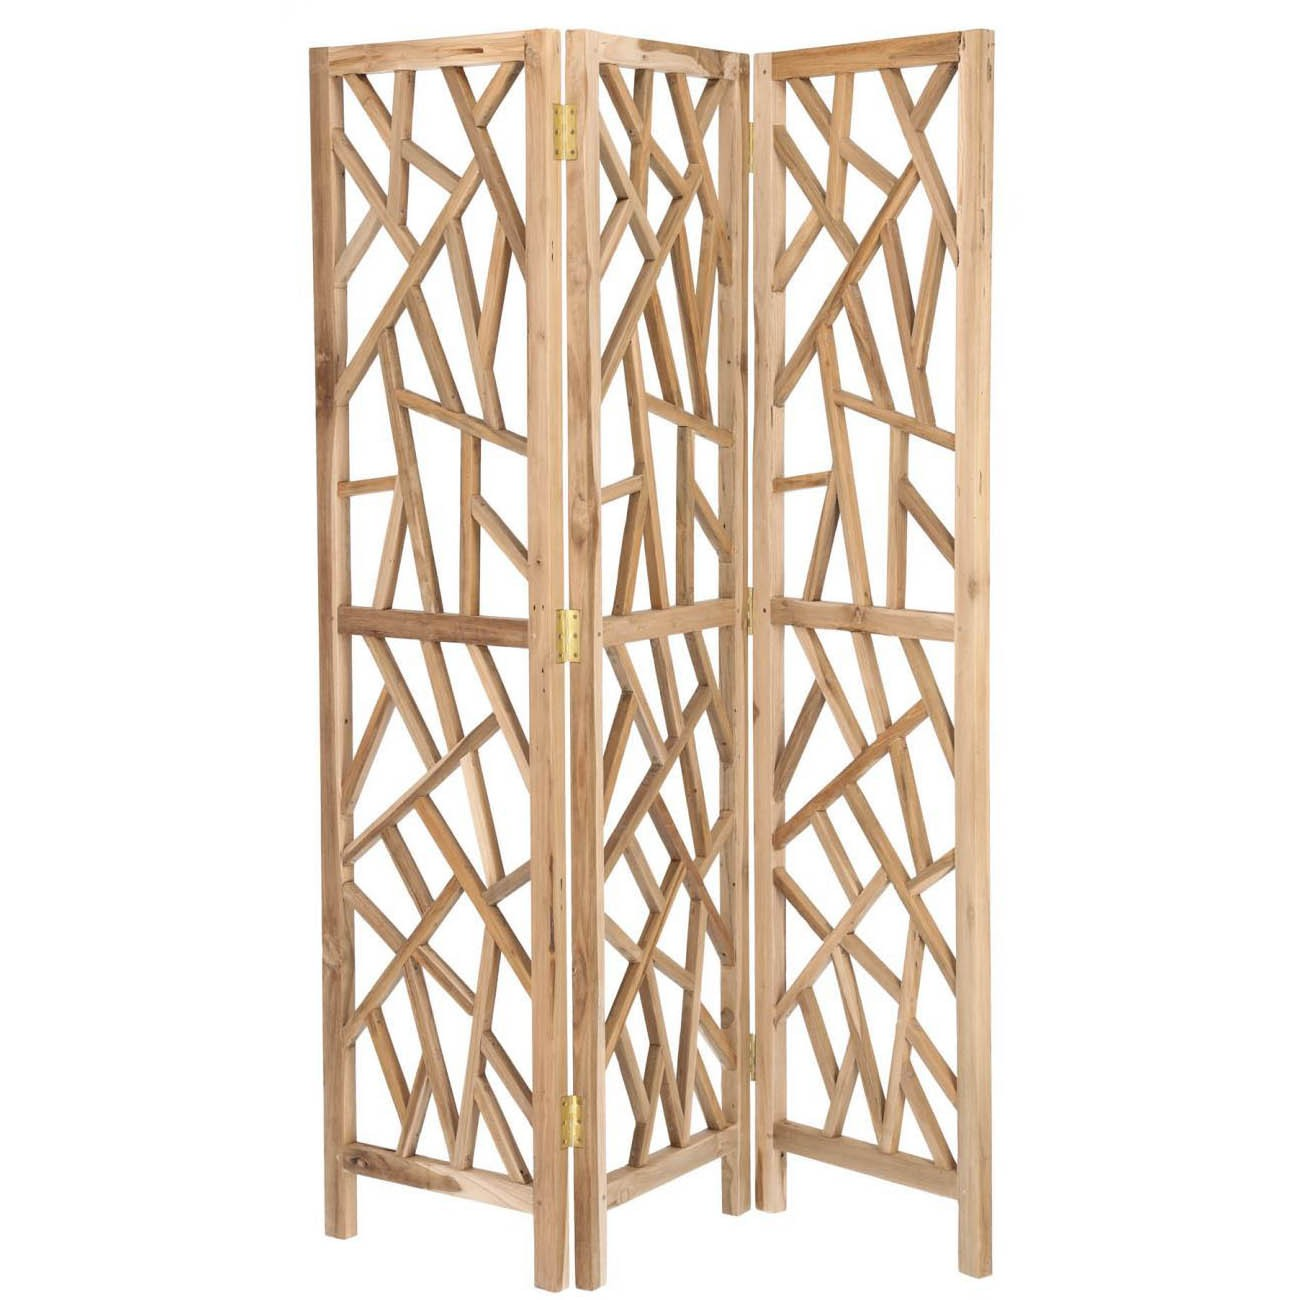 Evie Recycled Teak Timber Tri-fold Screen